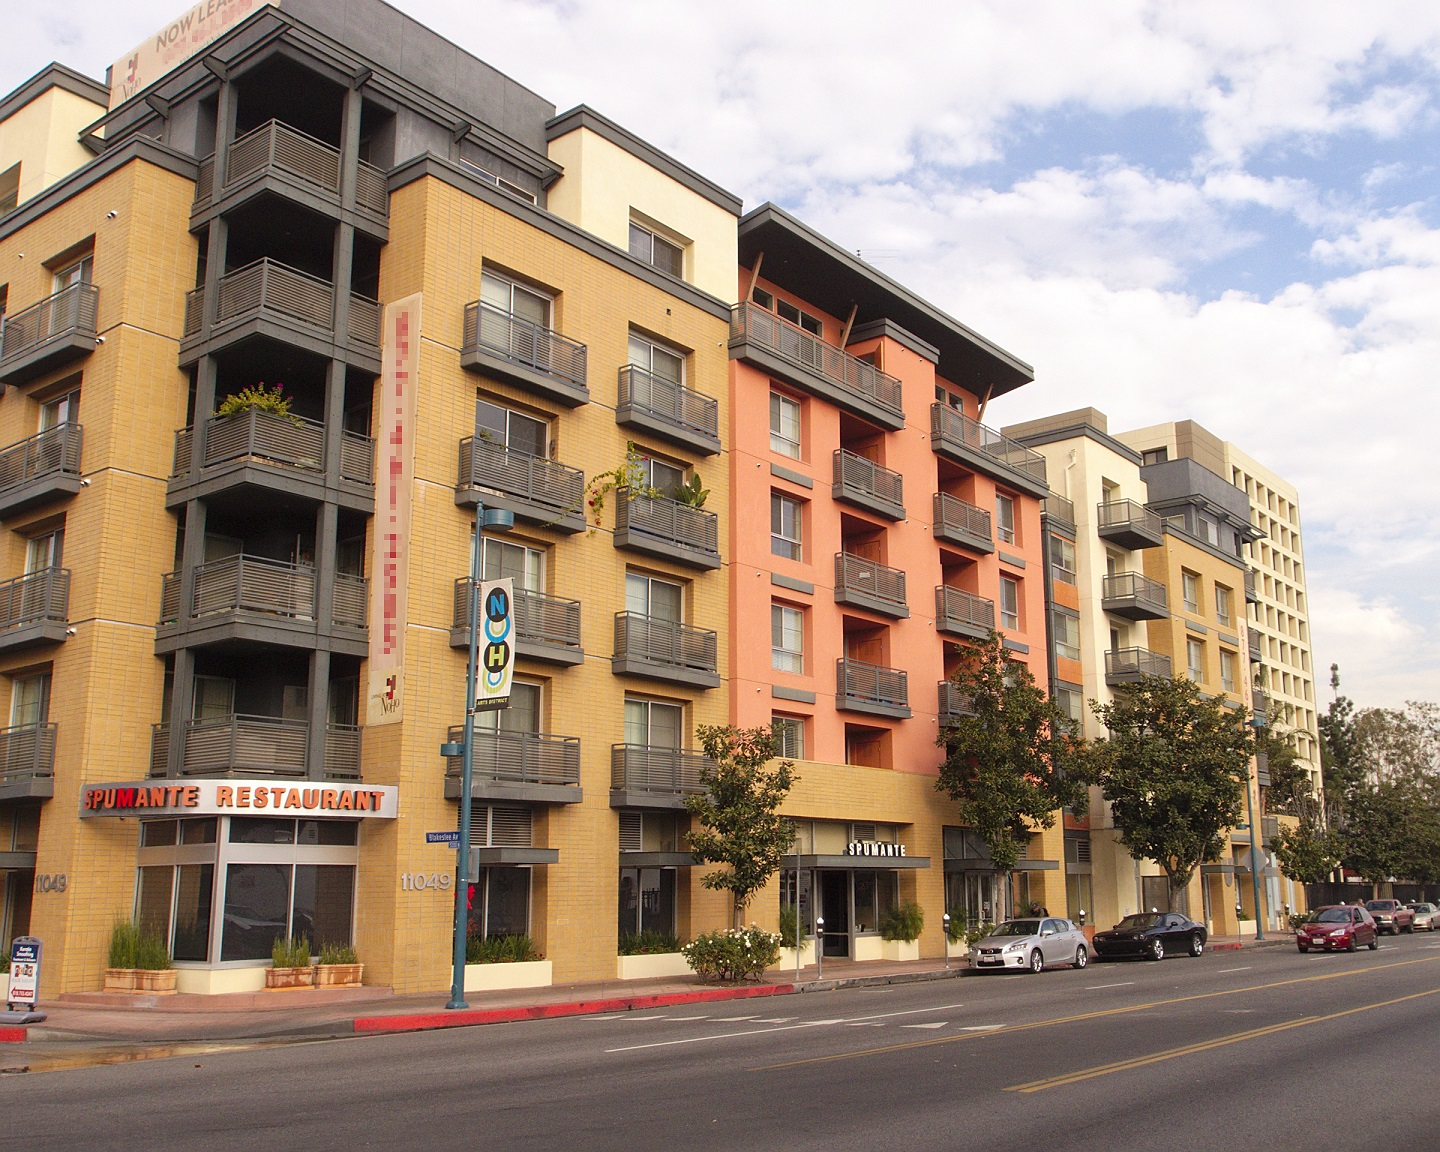 Los angeles neighborhood guide movoto for Real estate in los angeles for sale